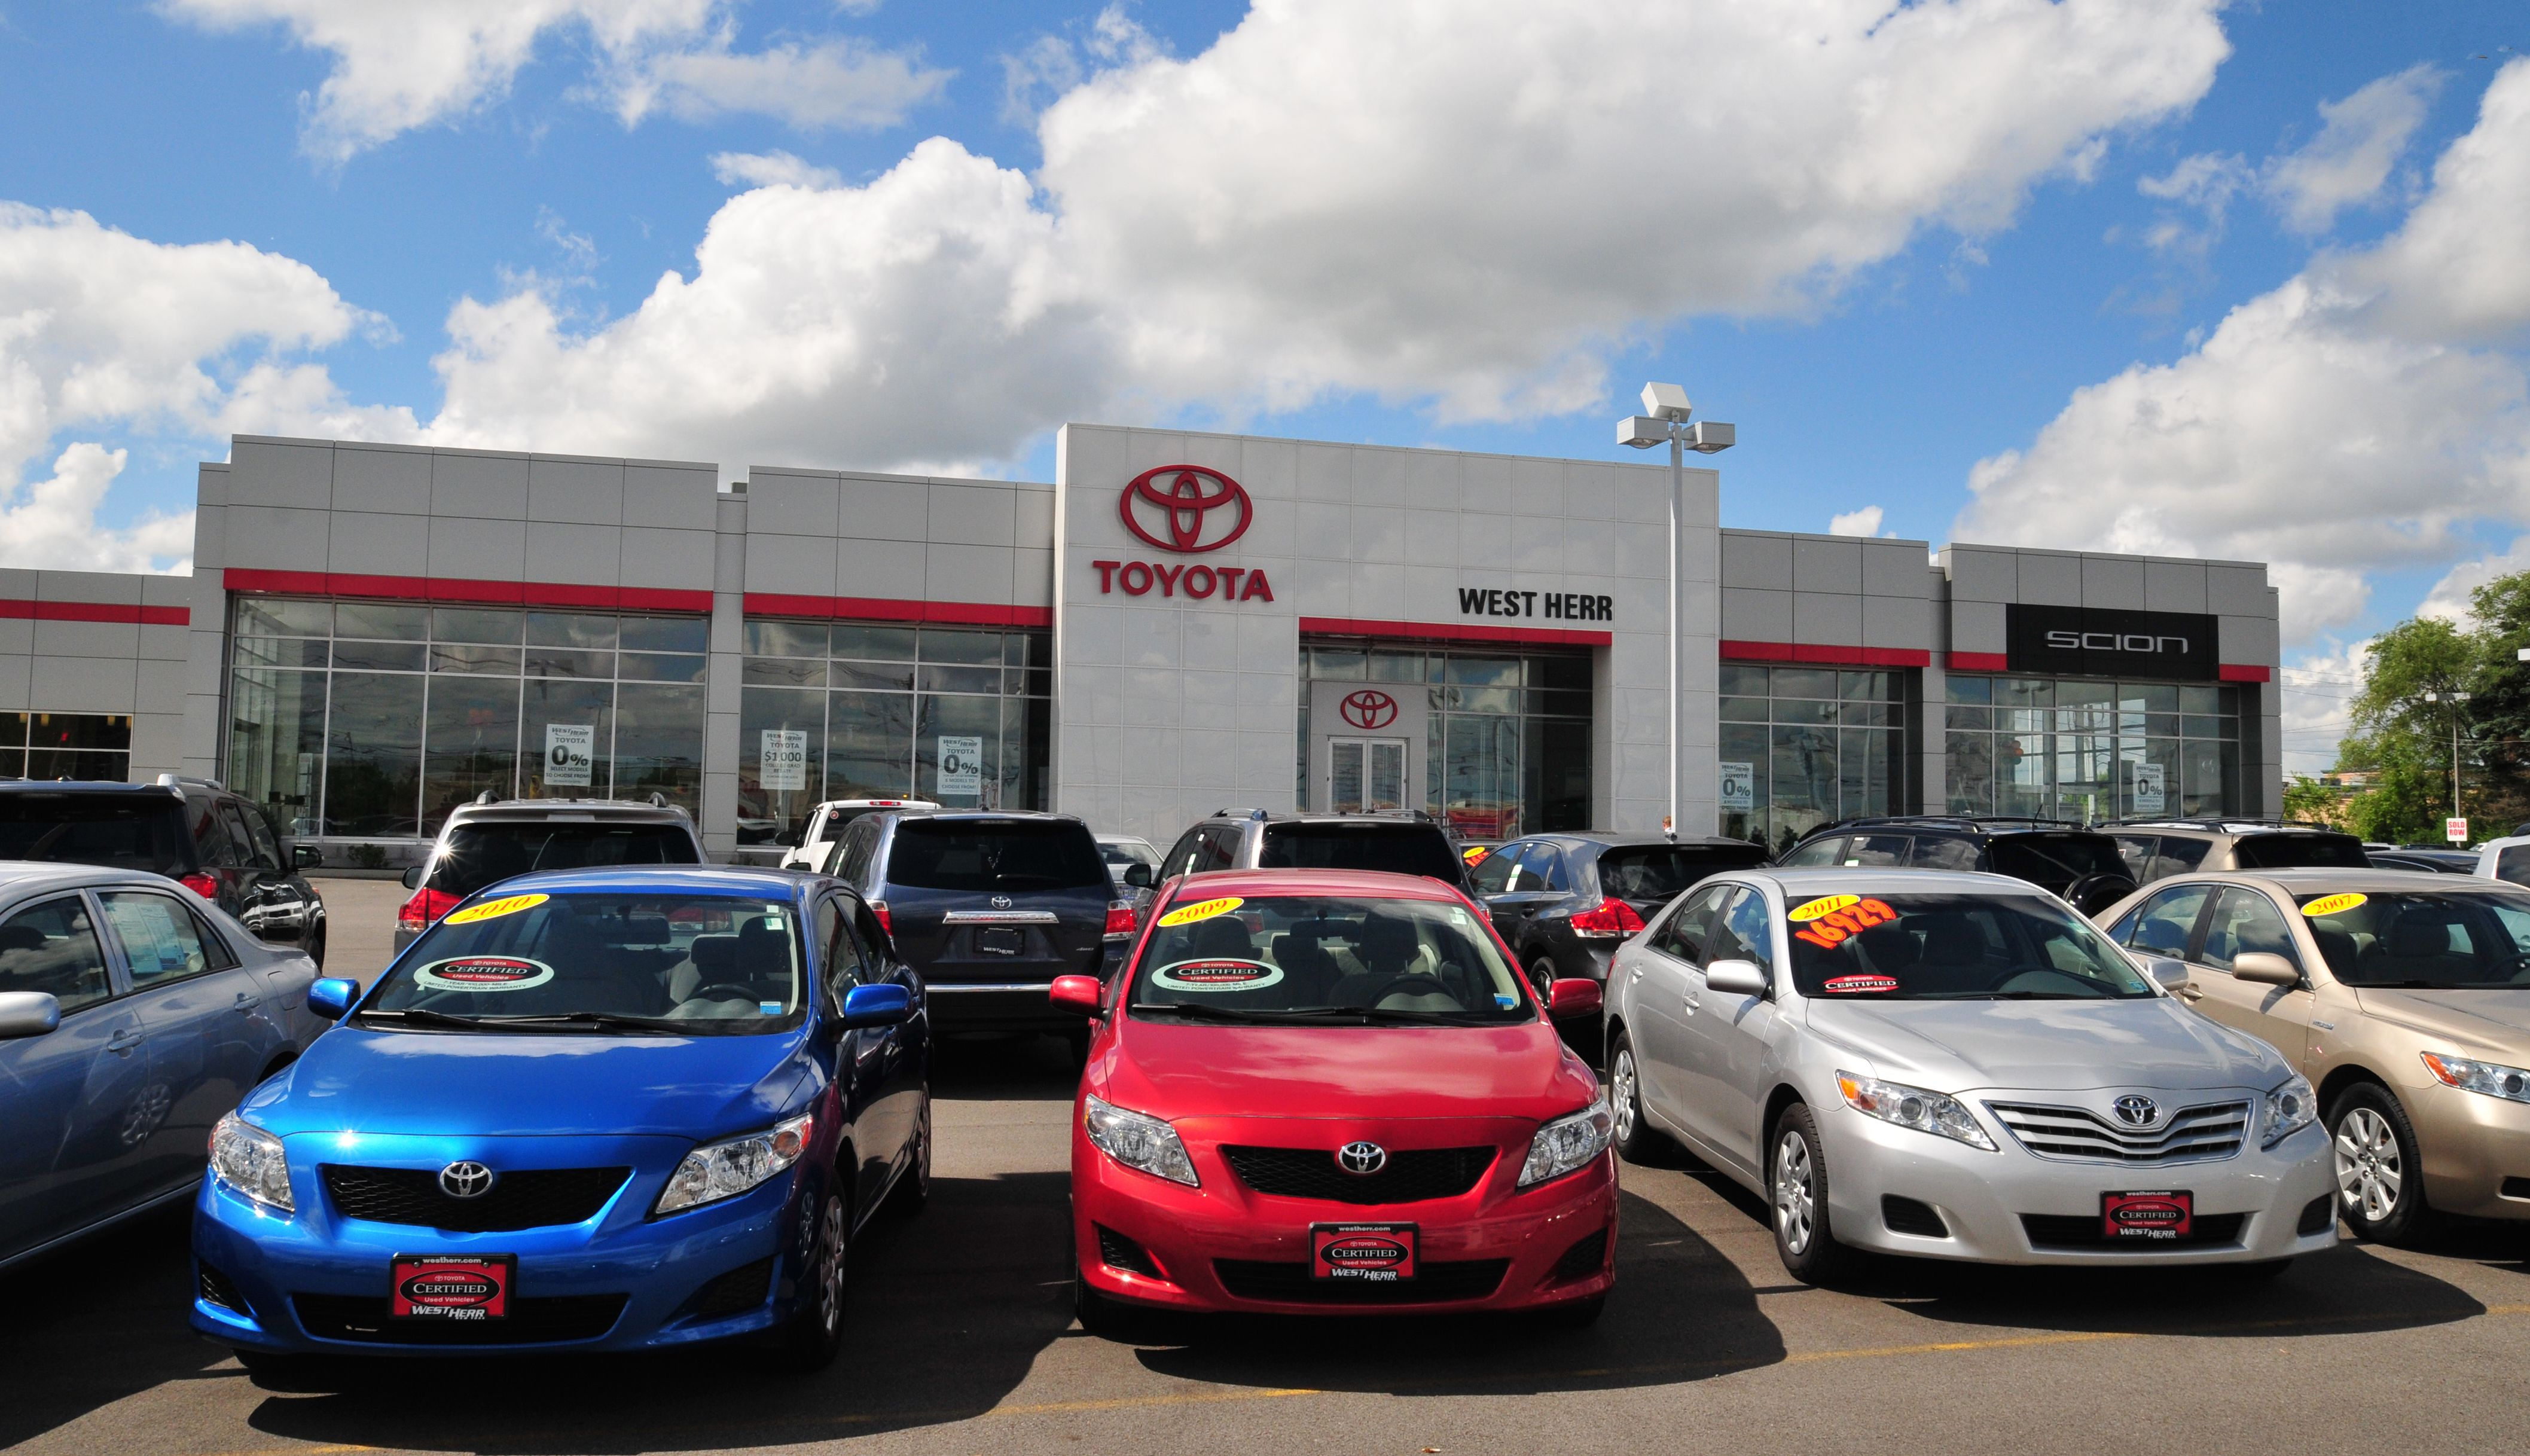 West Herr Used Cars >> West Herr Toyota Toyota Toyota Toyota Dealers Y Scion